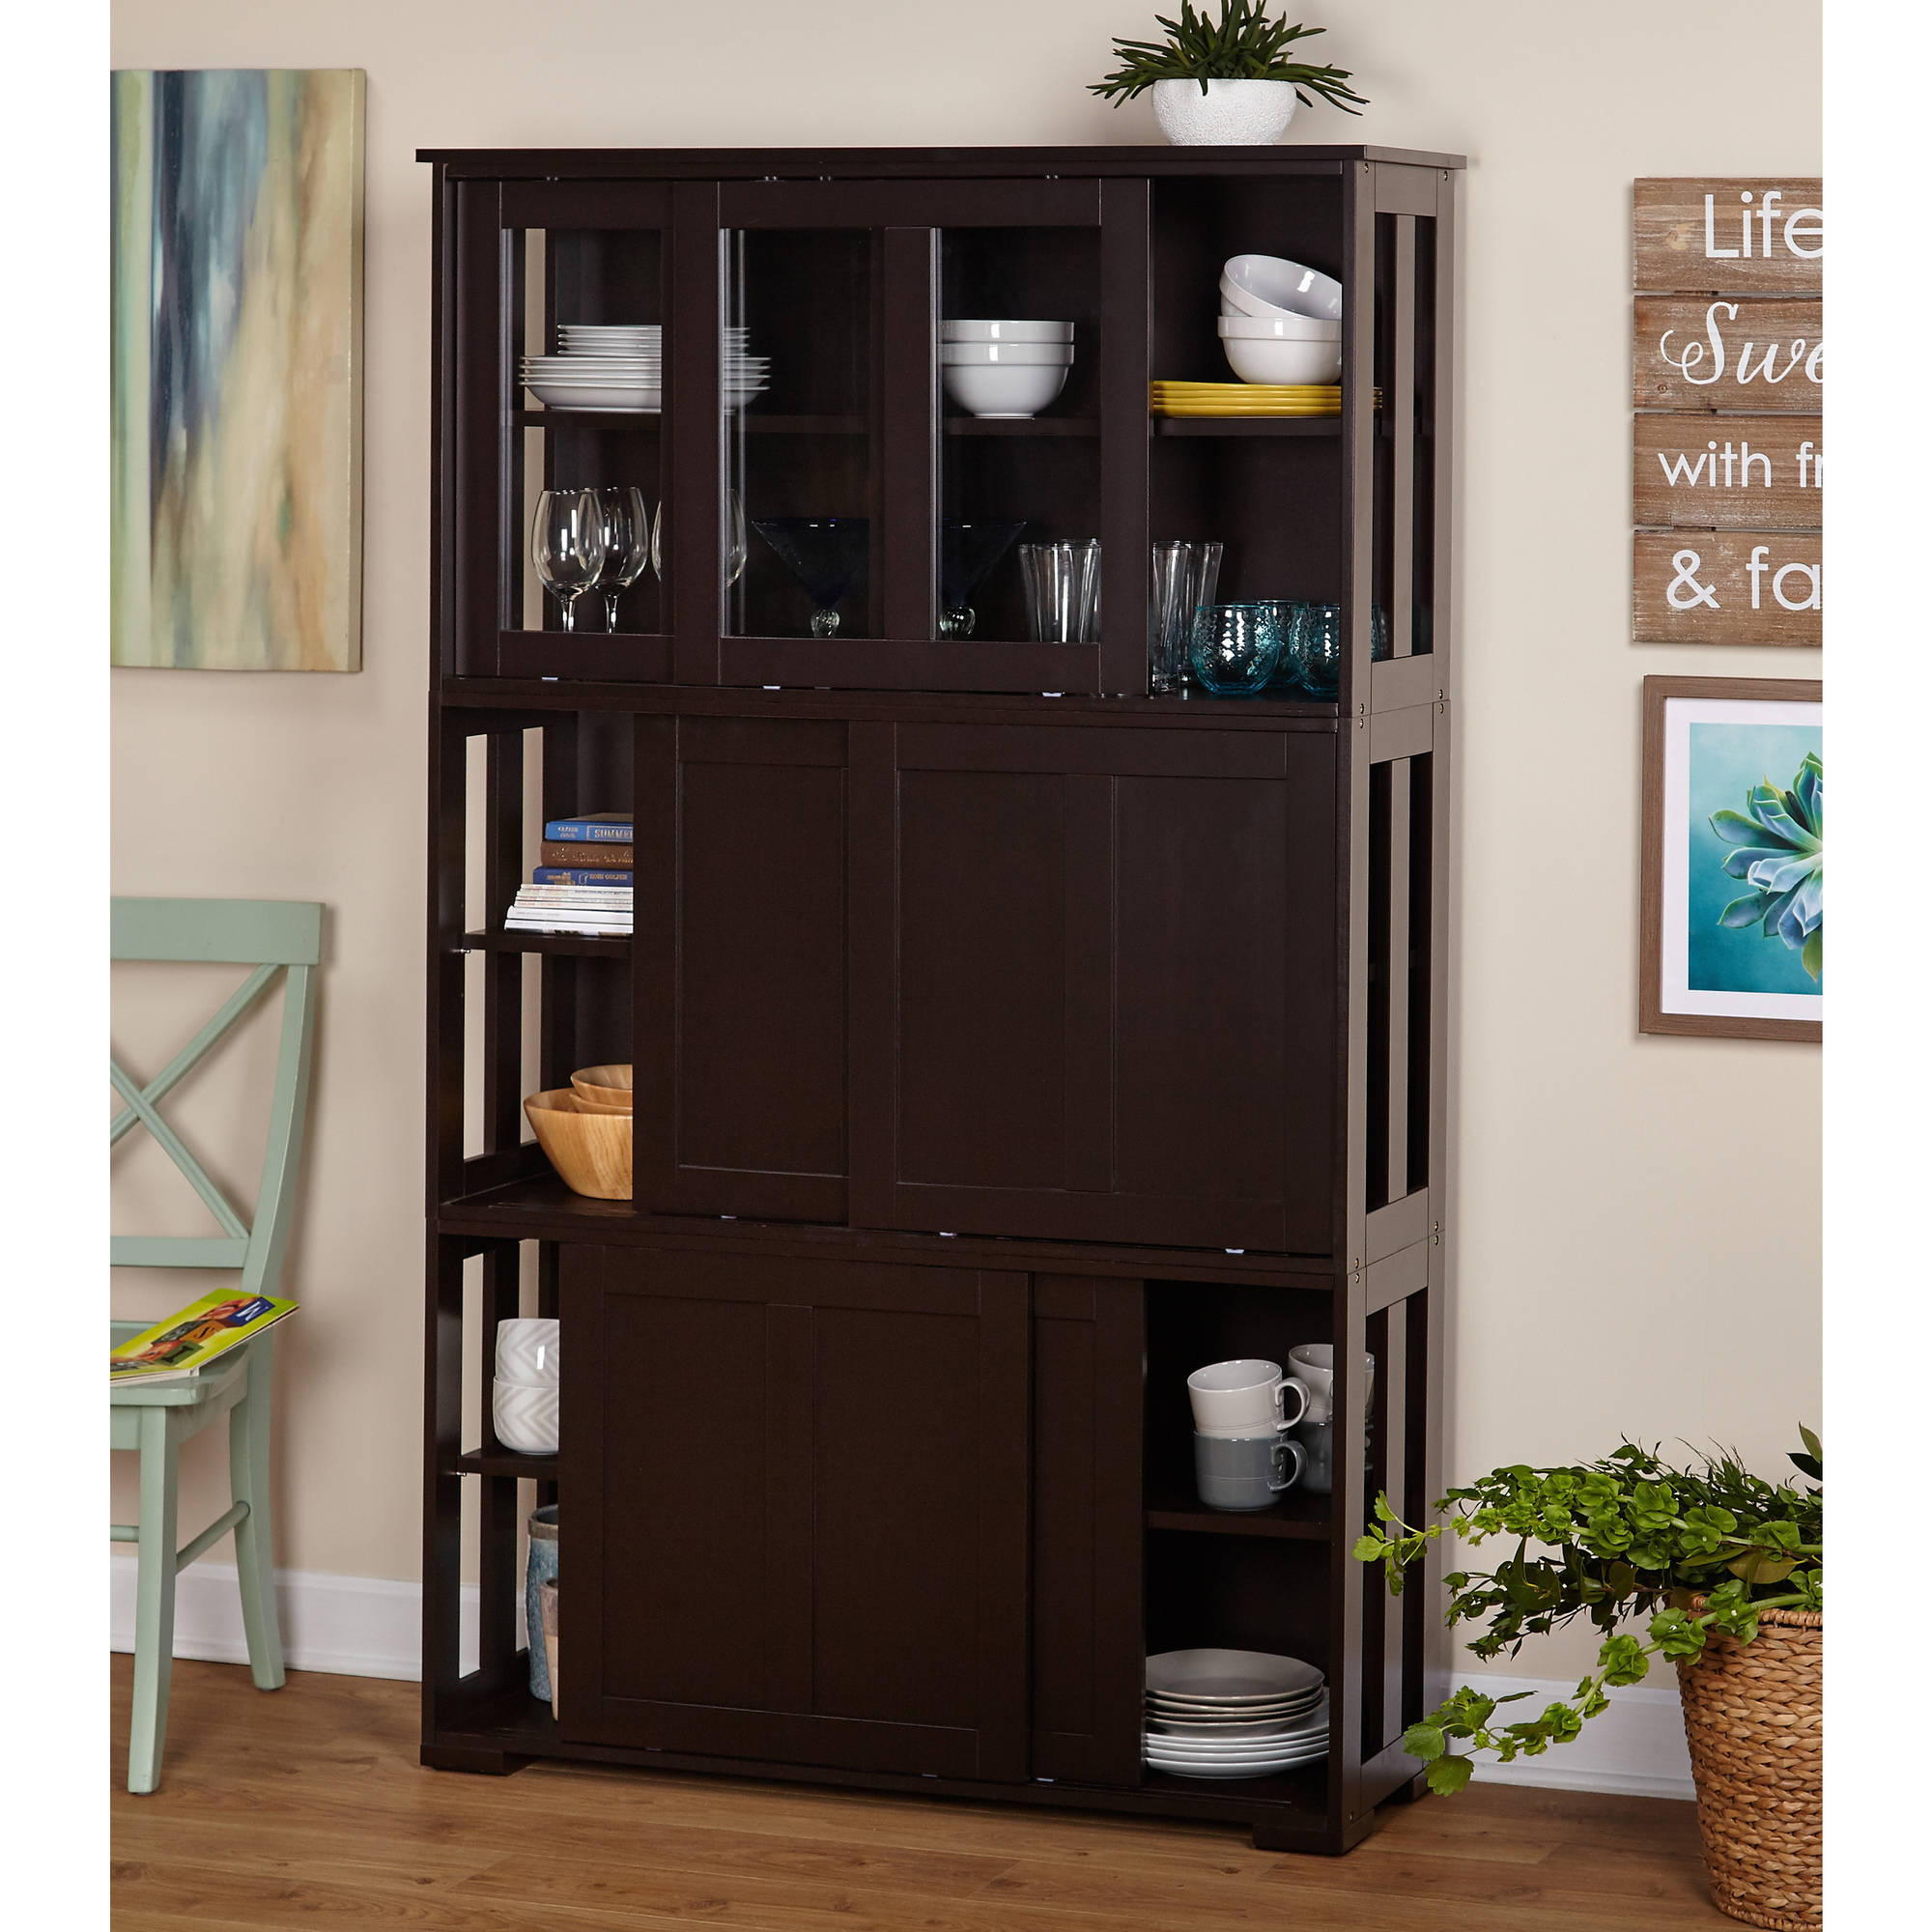 Sliding Wood Doors Stackable Storage Cabinet, Multiple Colors | eBay